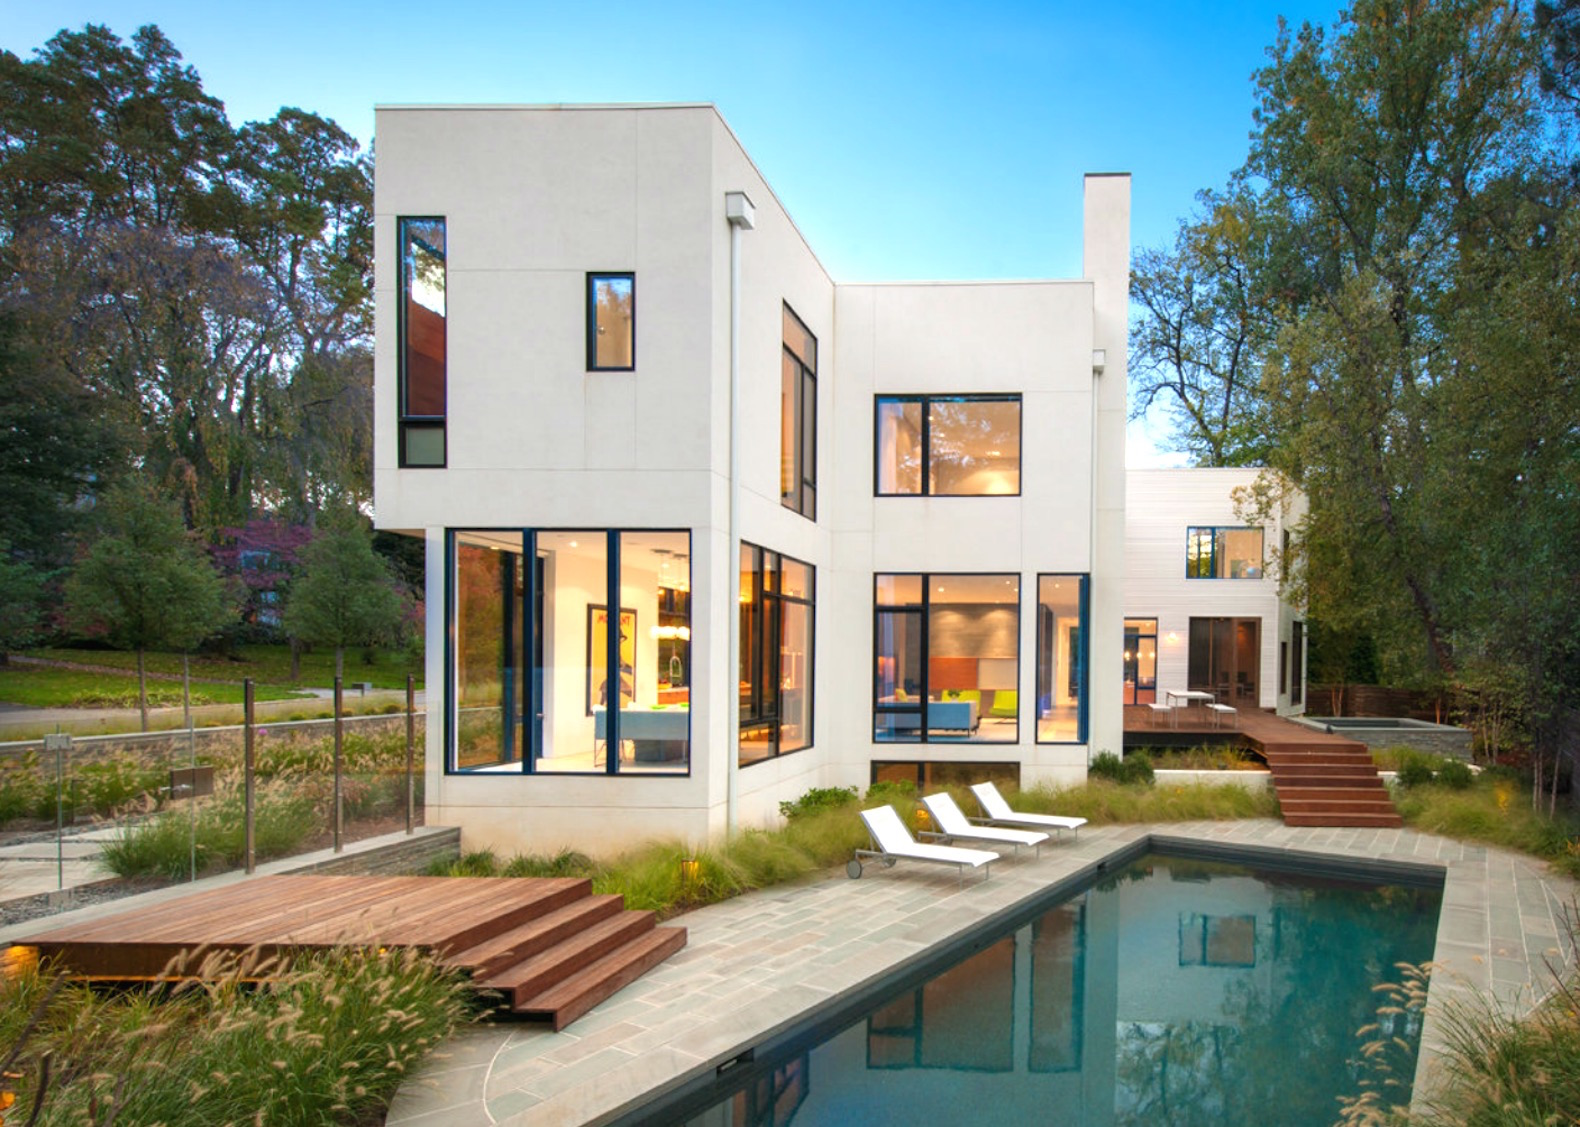 12 Gorgeous Prefab Homes Assembled In Just Three Days Or Less on Zero Energy Building